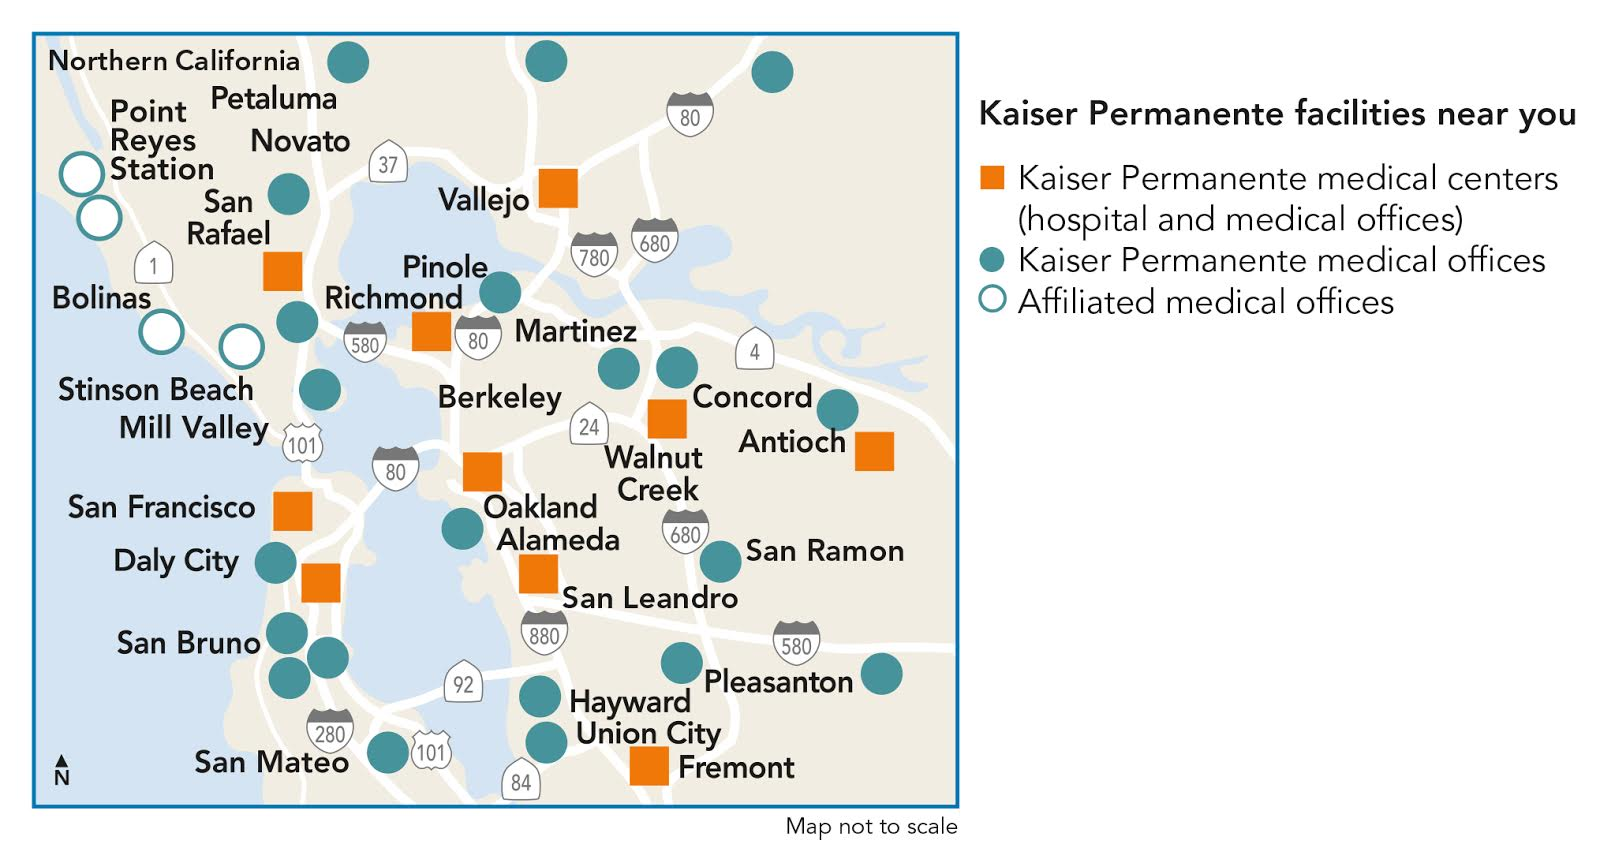 Kaiser Locations California Map.Kaiser Permanente Lawrence Berkeley National Lab University Of